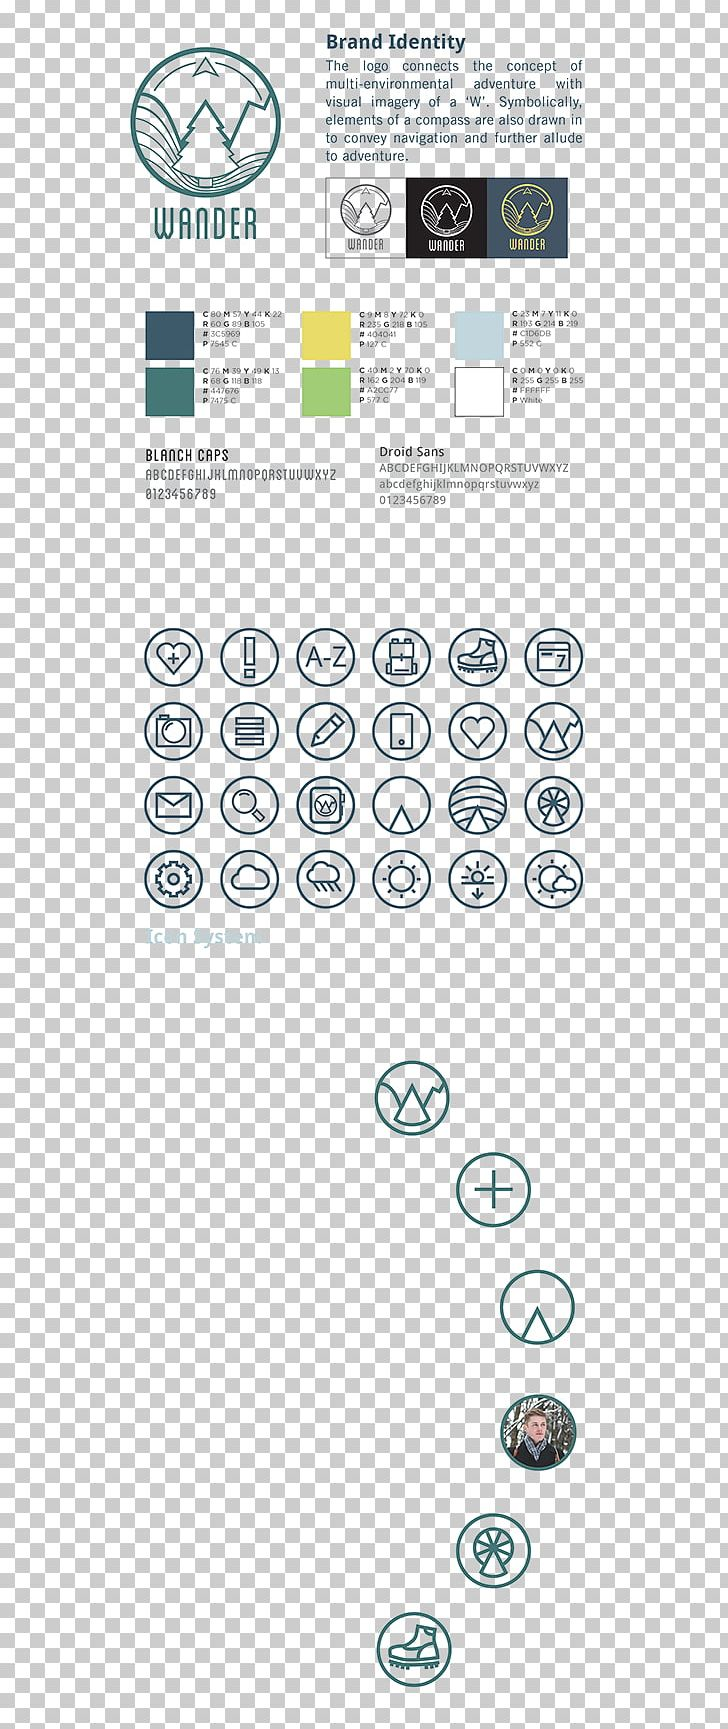 Brand Logo Font PNG, Clipart, Area, Art, Brand, Diagram, Line Free PNG Download